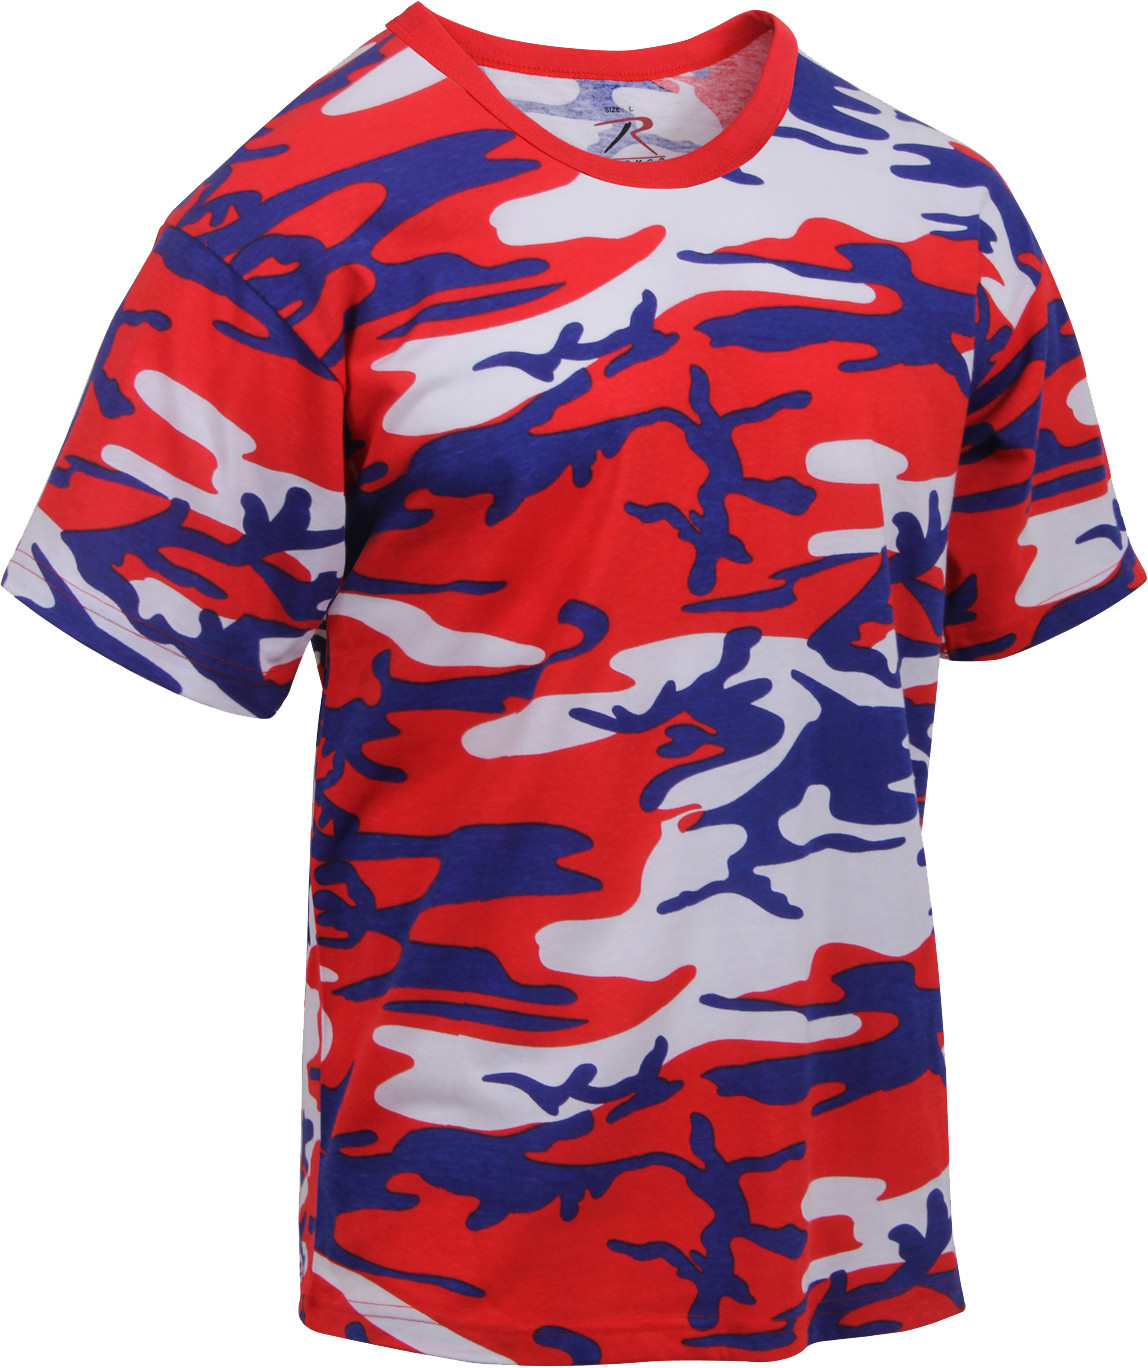 Red White Blue Camouflage Military Short Sleeve T-Shirt dafe54b319b